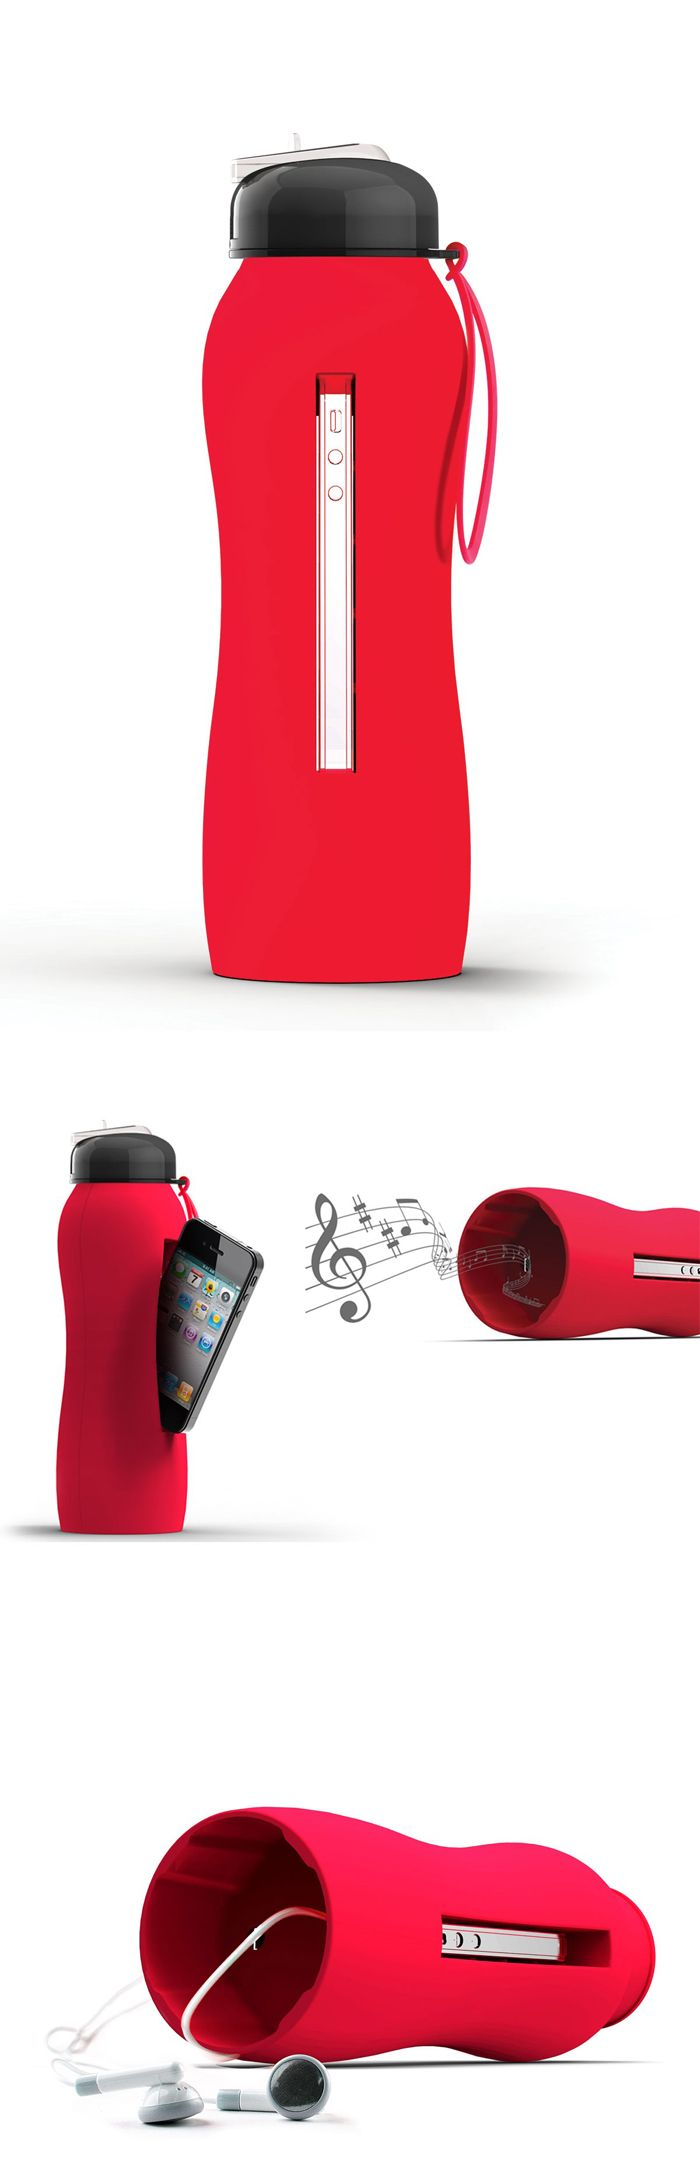 Water bottle that doubles as an amp for your iPhone